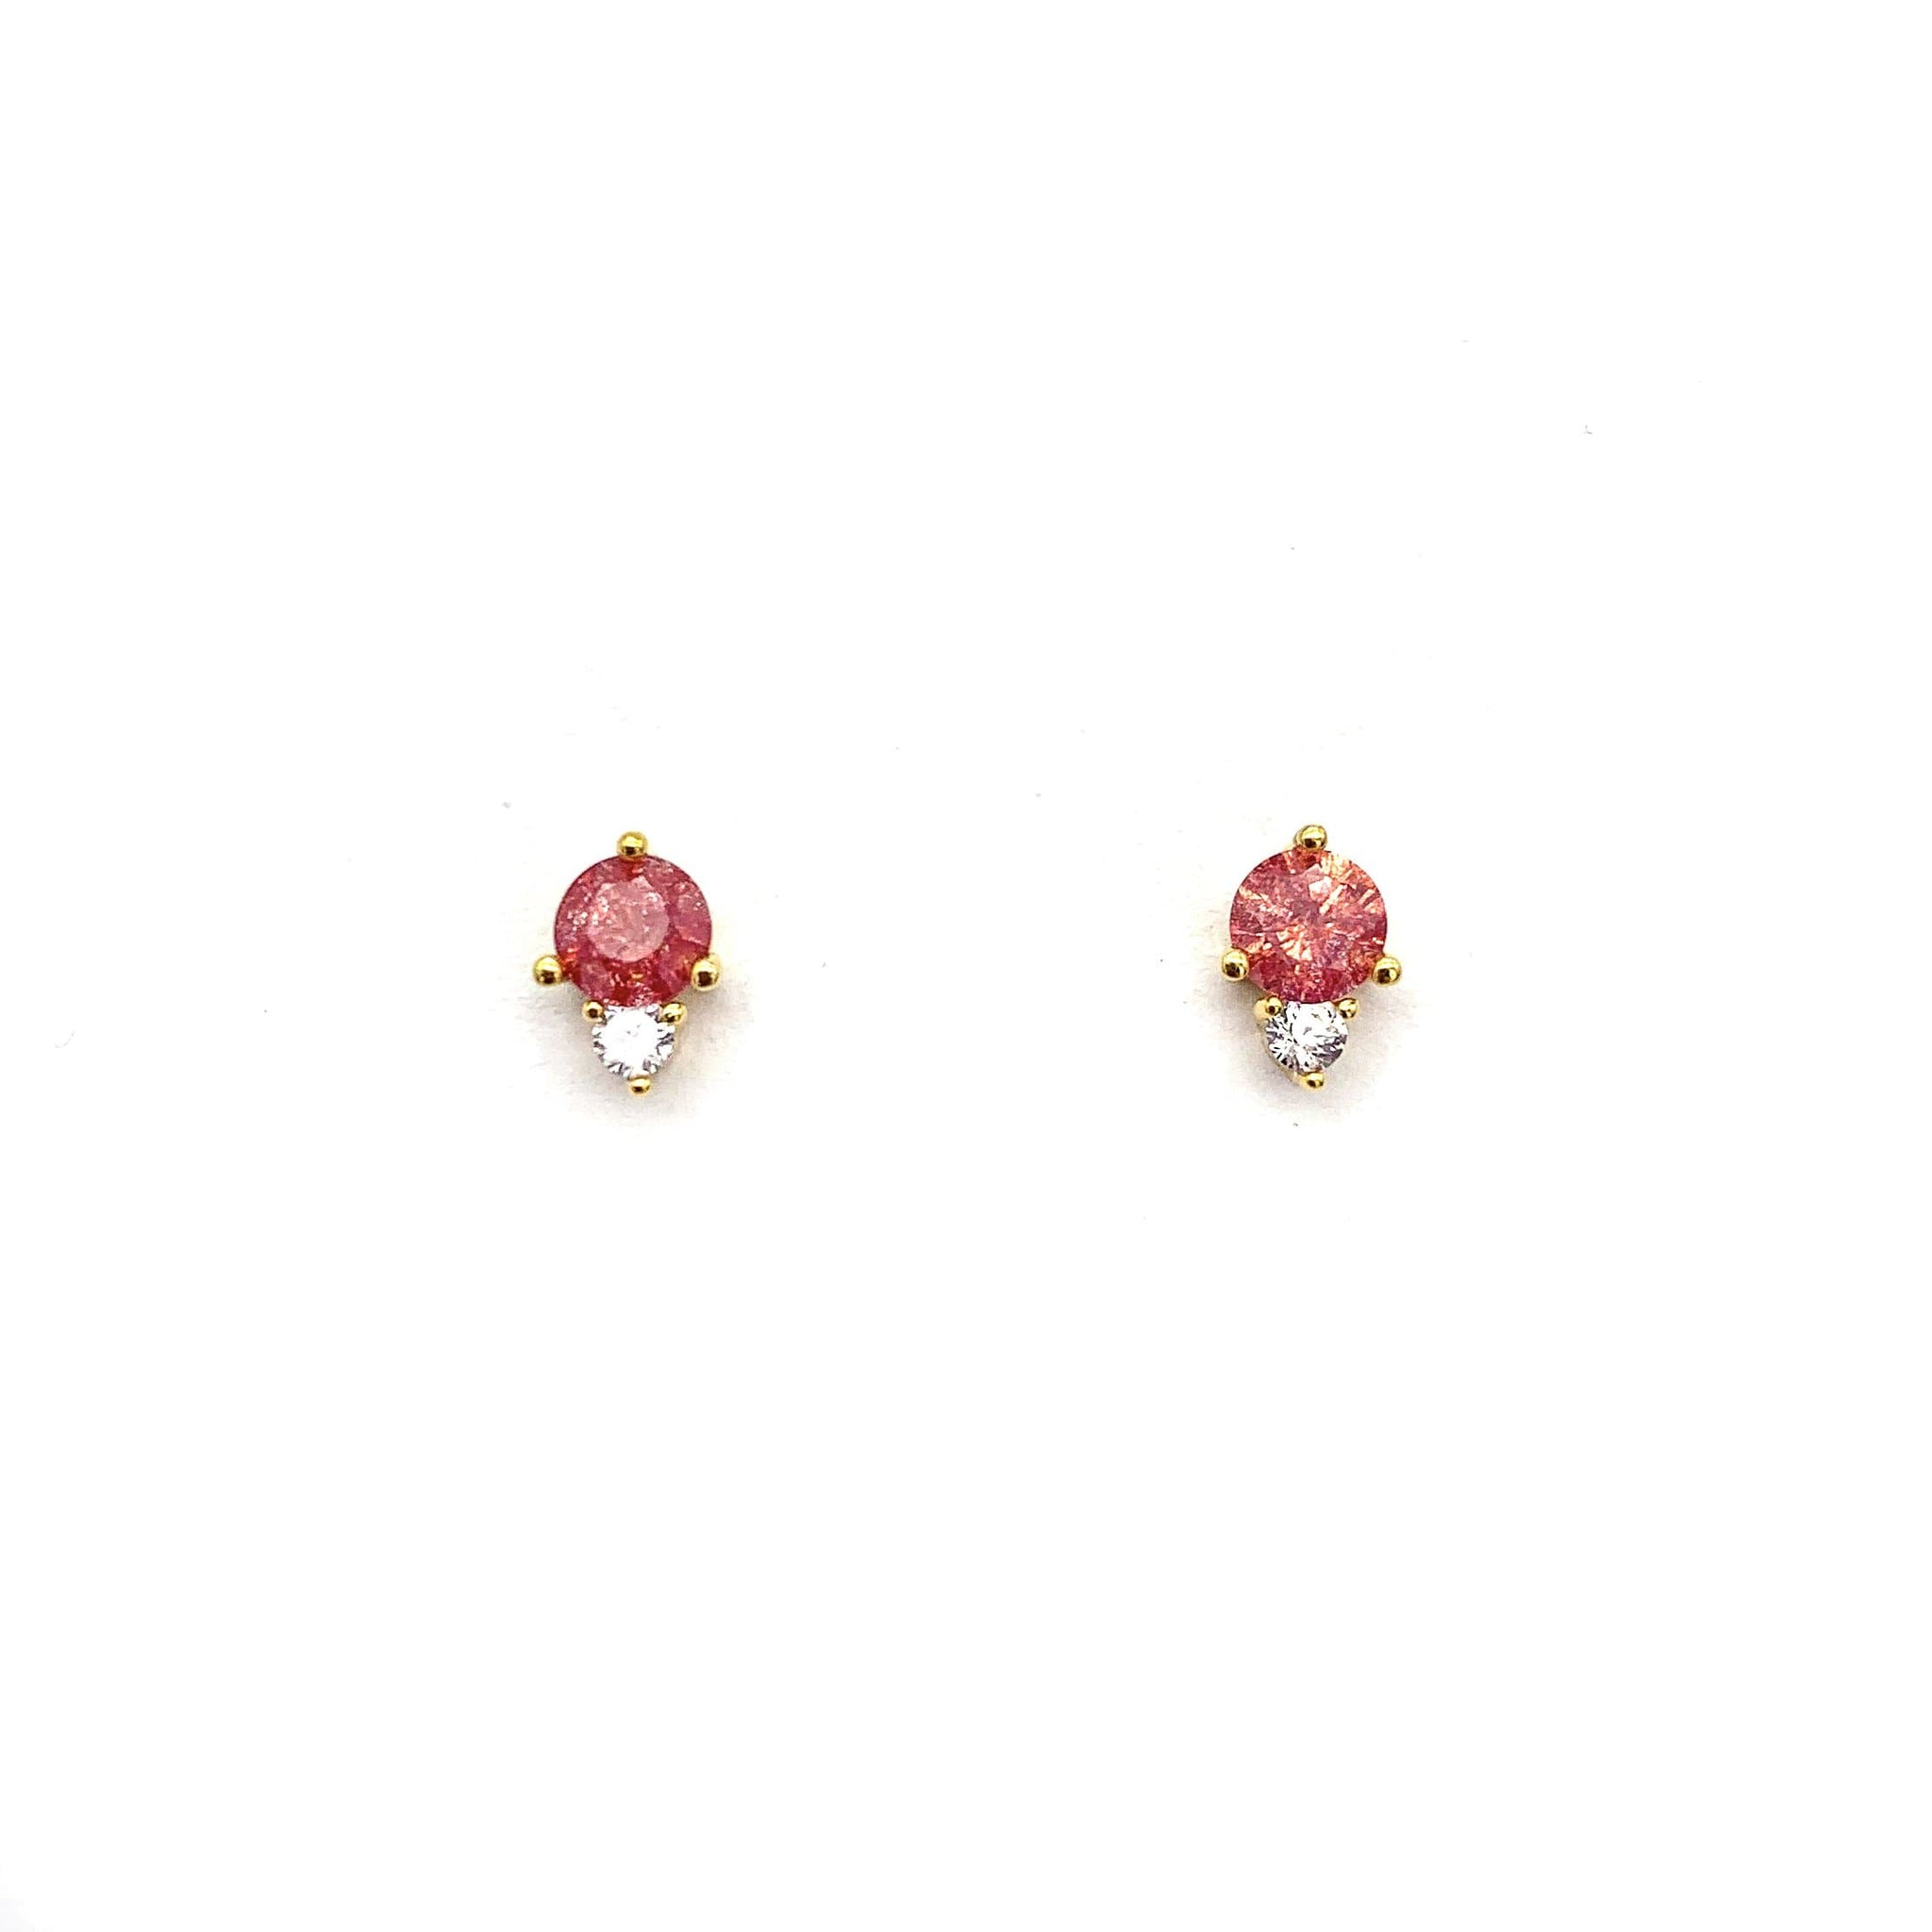 Gem CZ Studs, Earrings, adorn512, adorn512